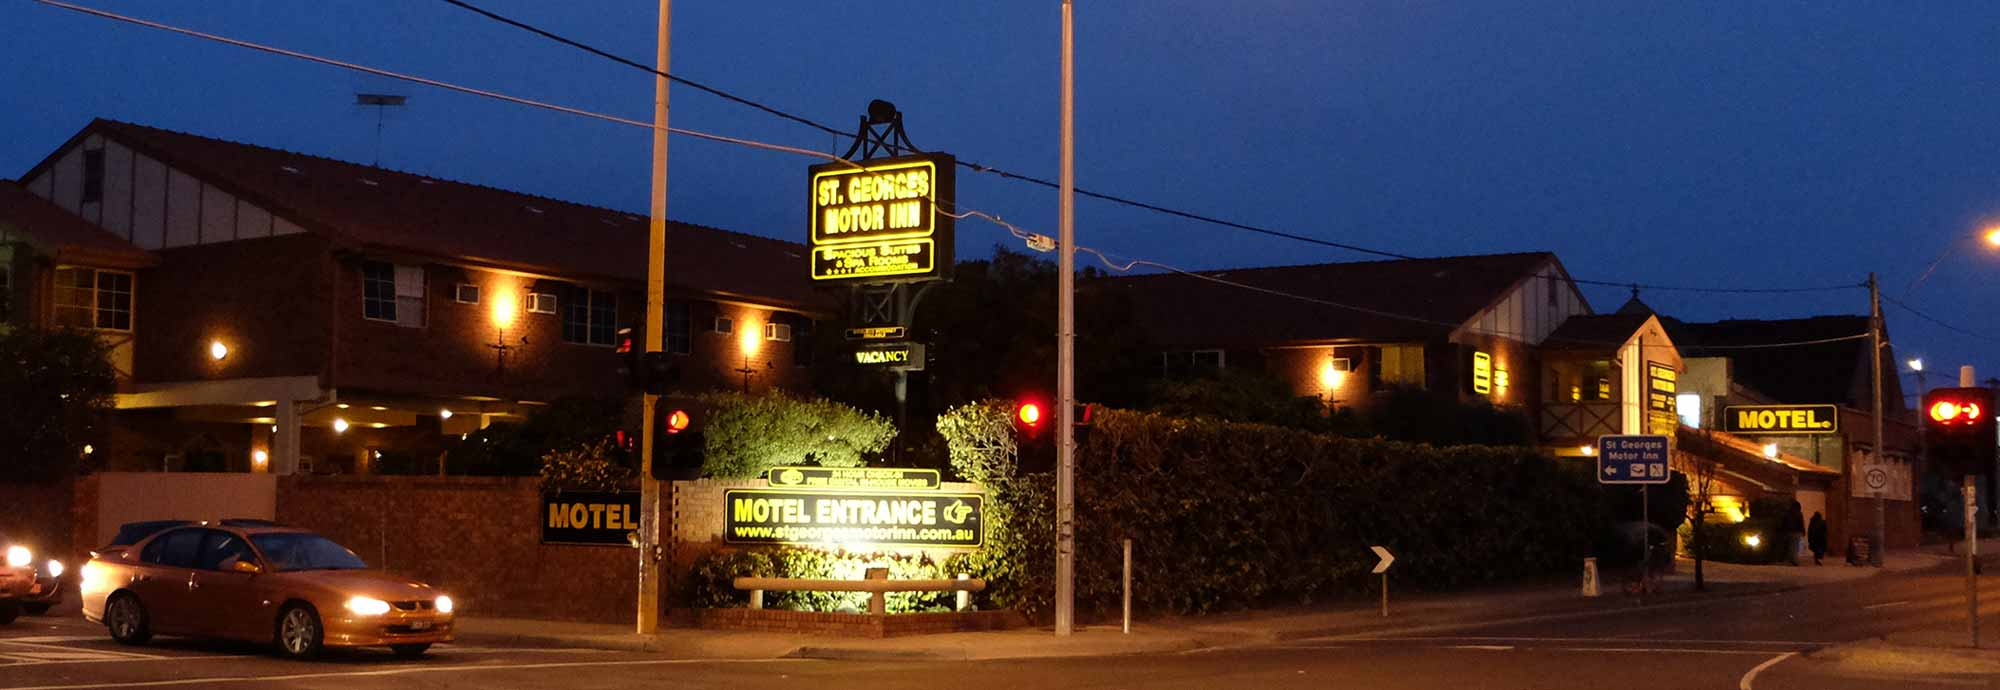 St georges motor inn melbourne northern suburb accommodation for St georges motor inn